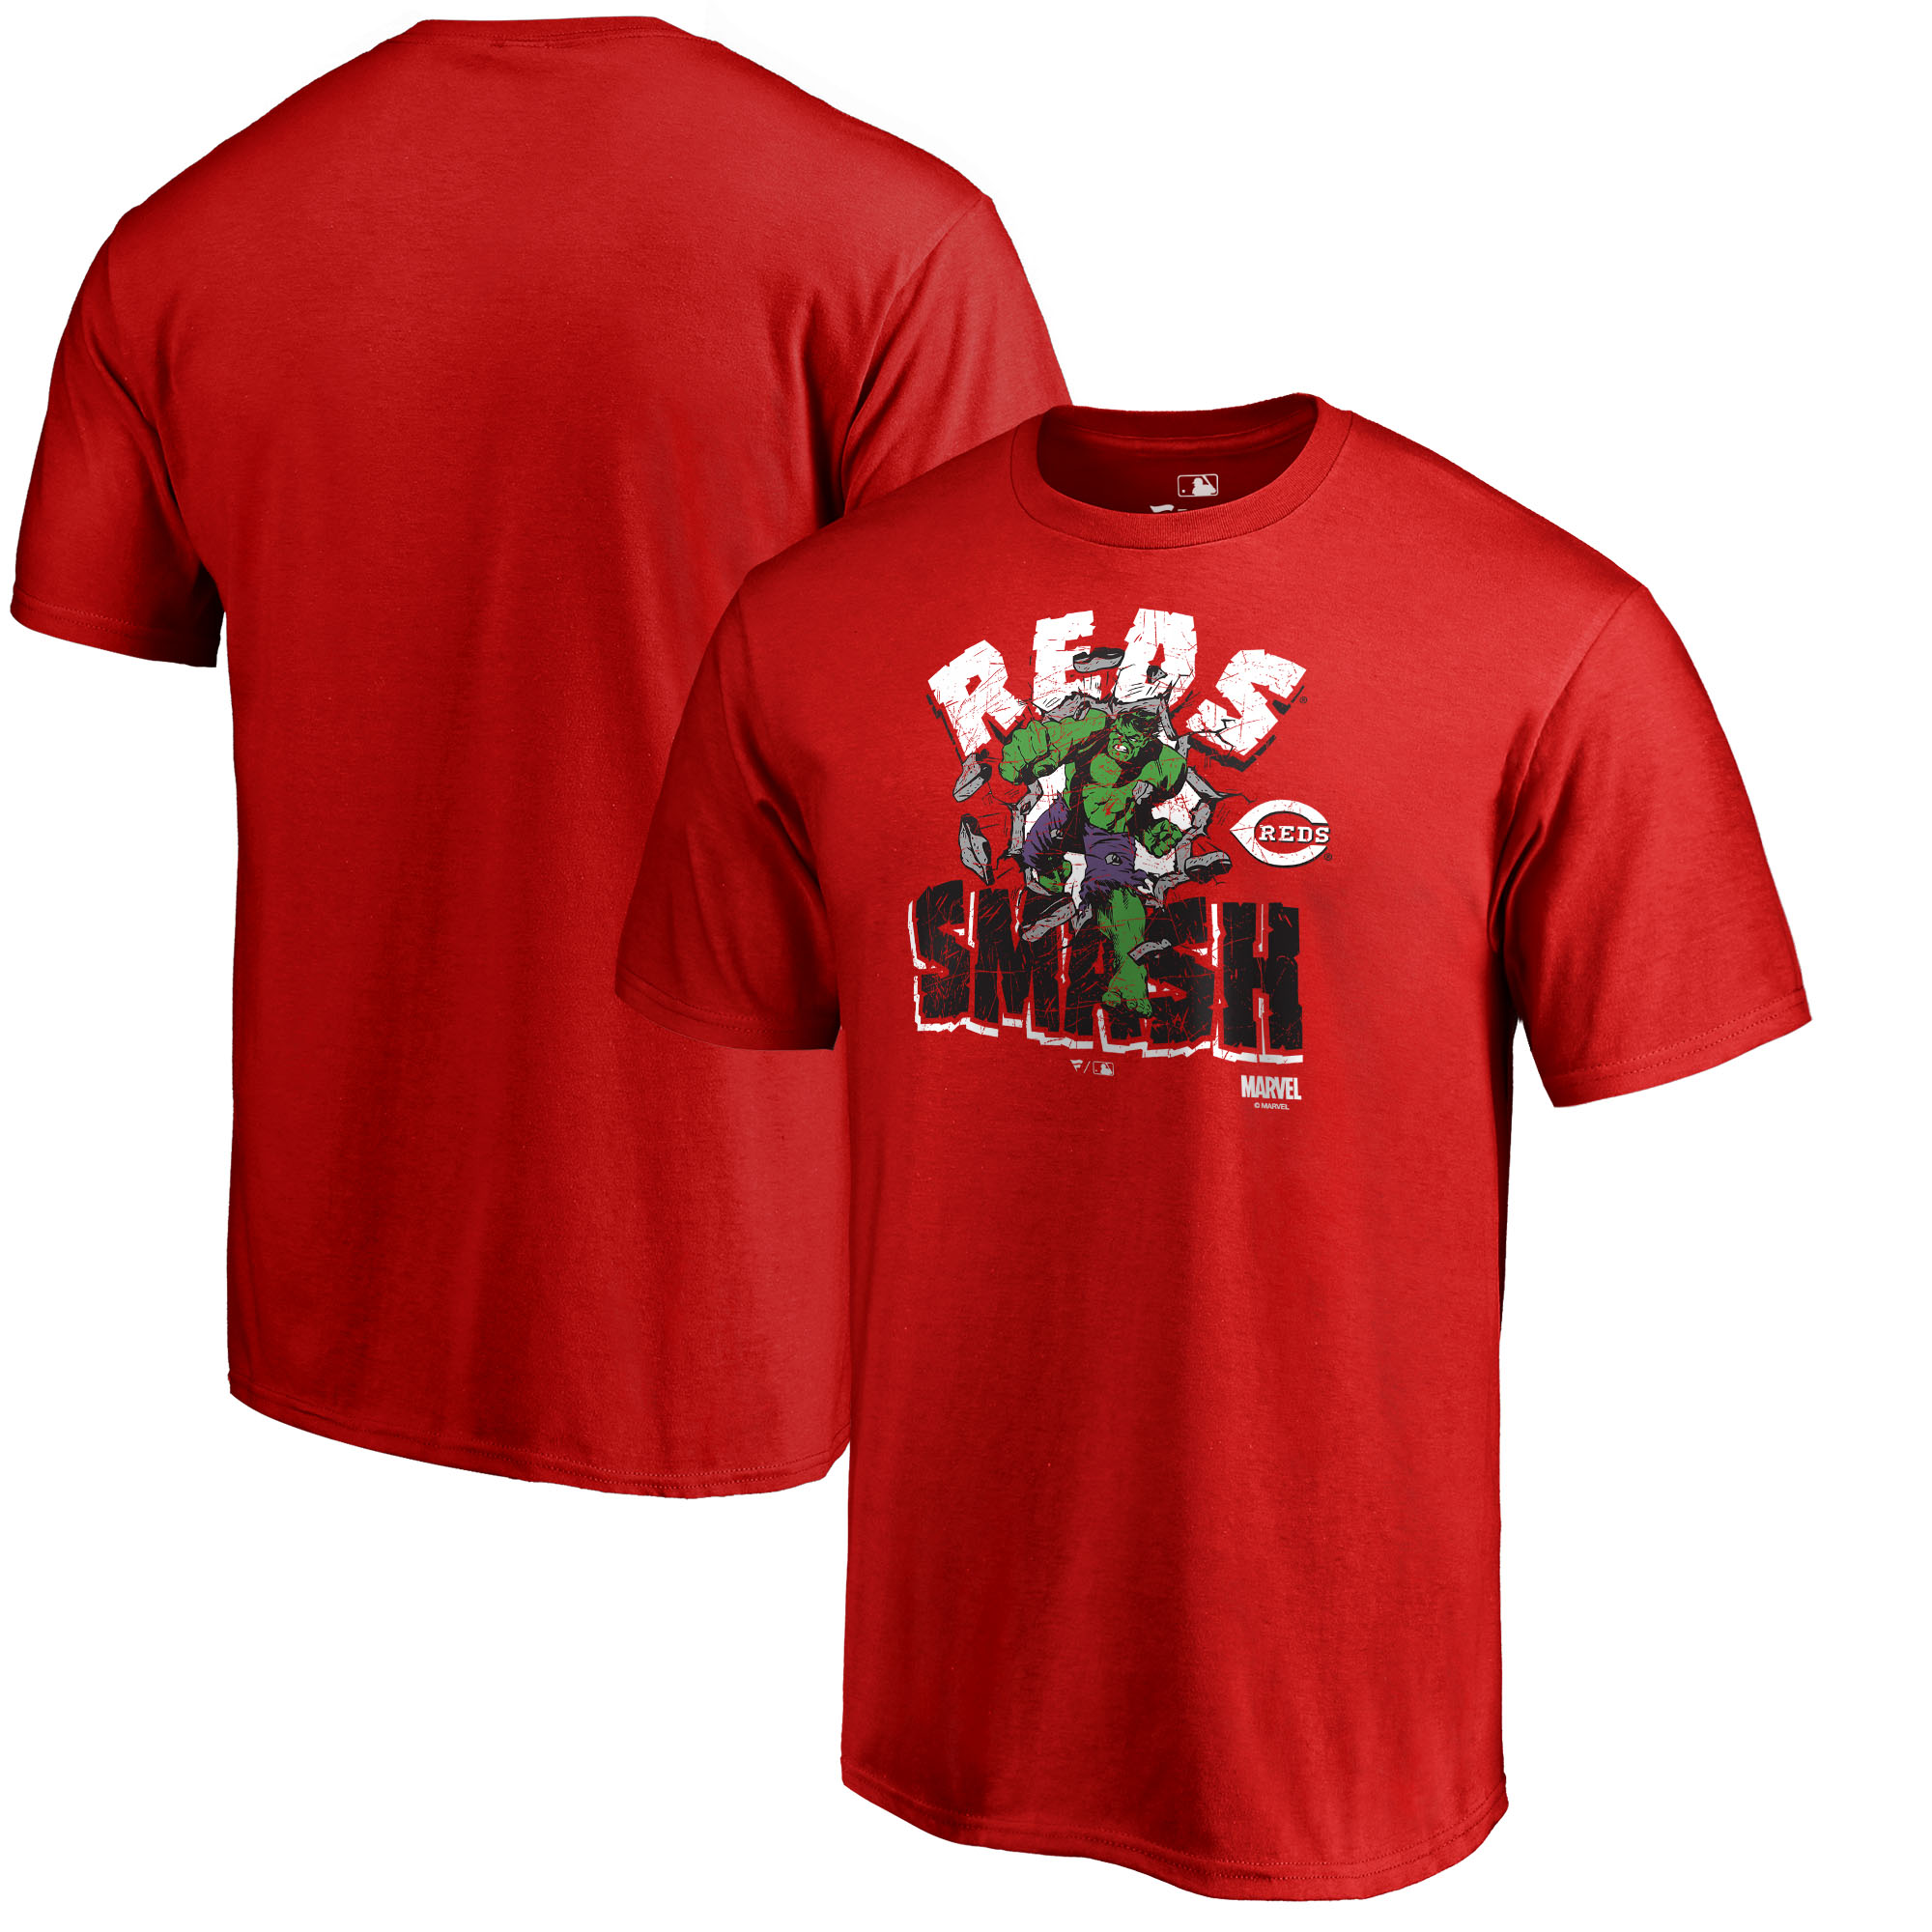 Cincinnati Reds Fanatics Branded Marvel Hulk Smash T-Shirt - Red